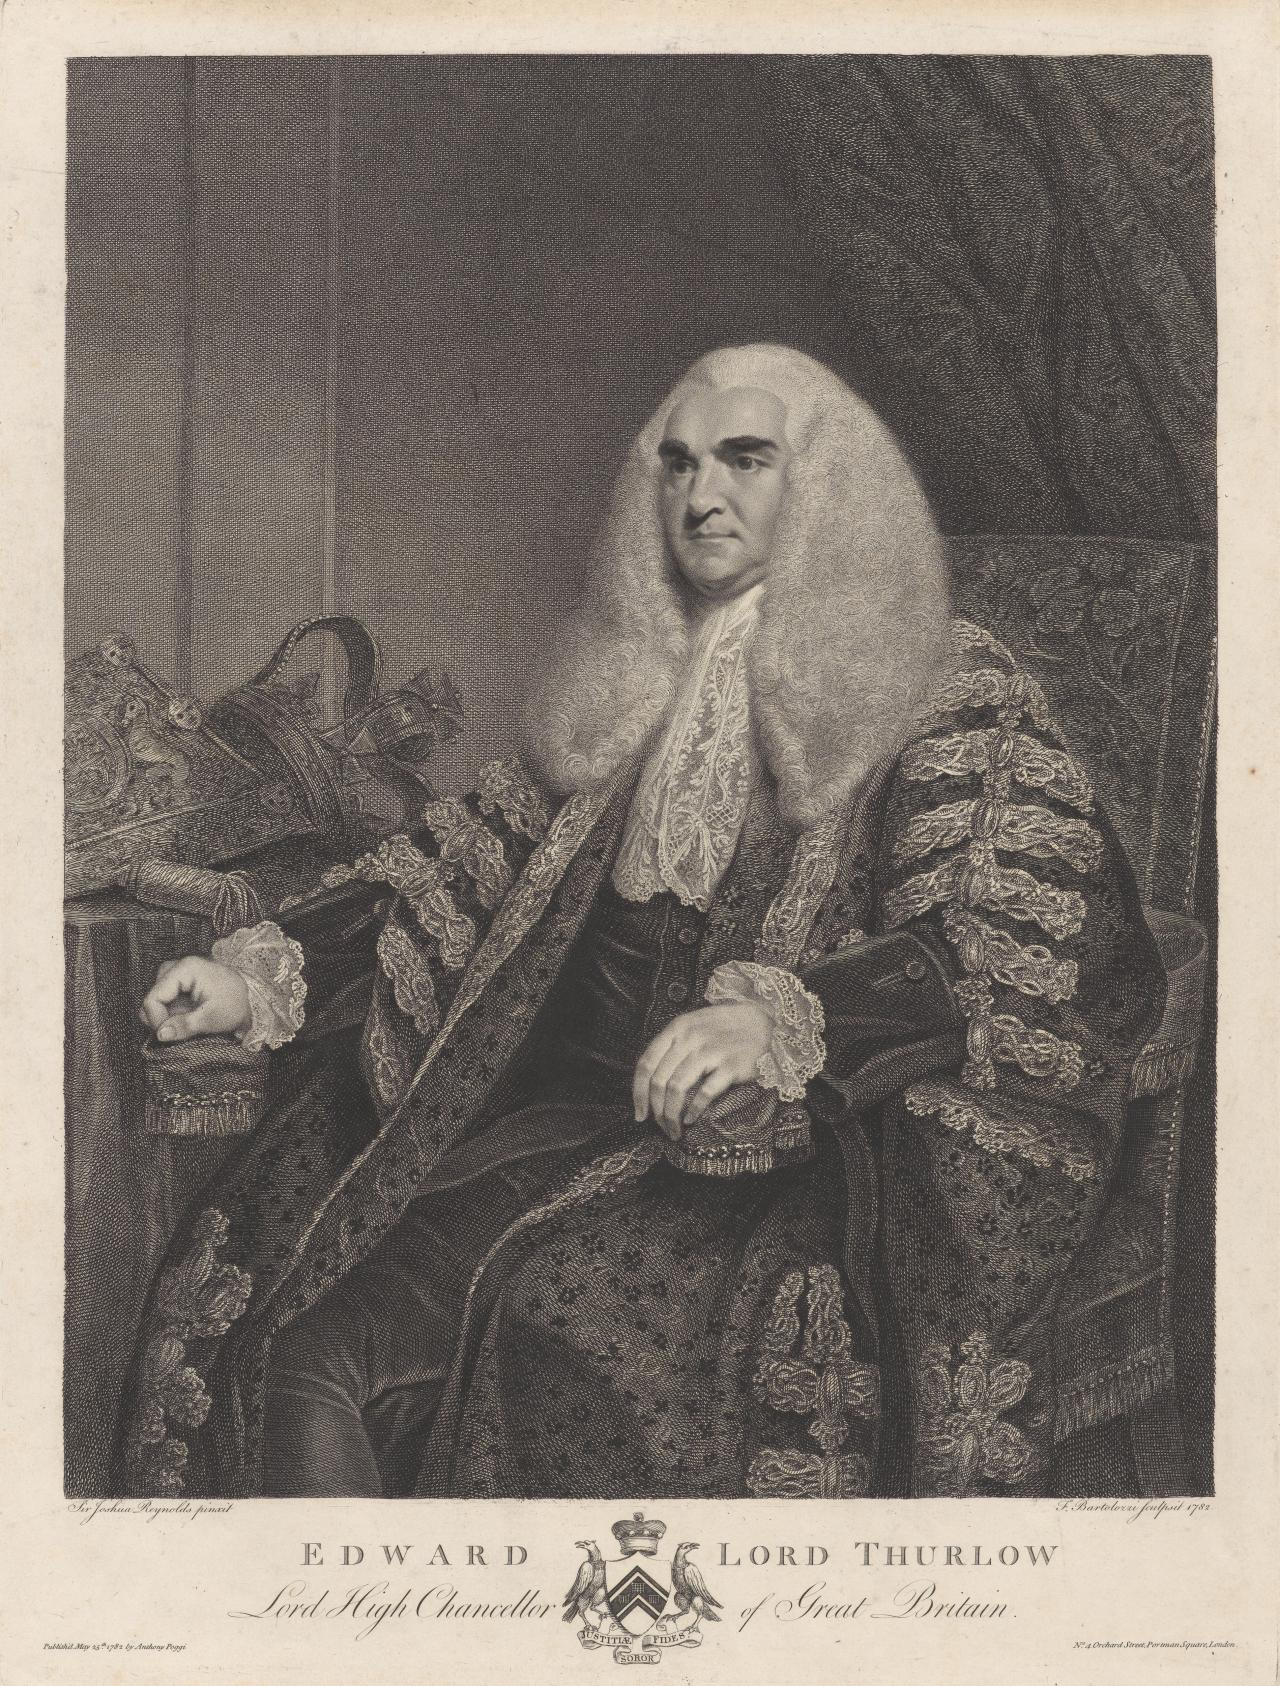 Edward Lord Thurlow